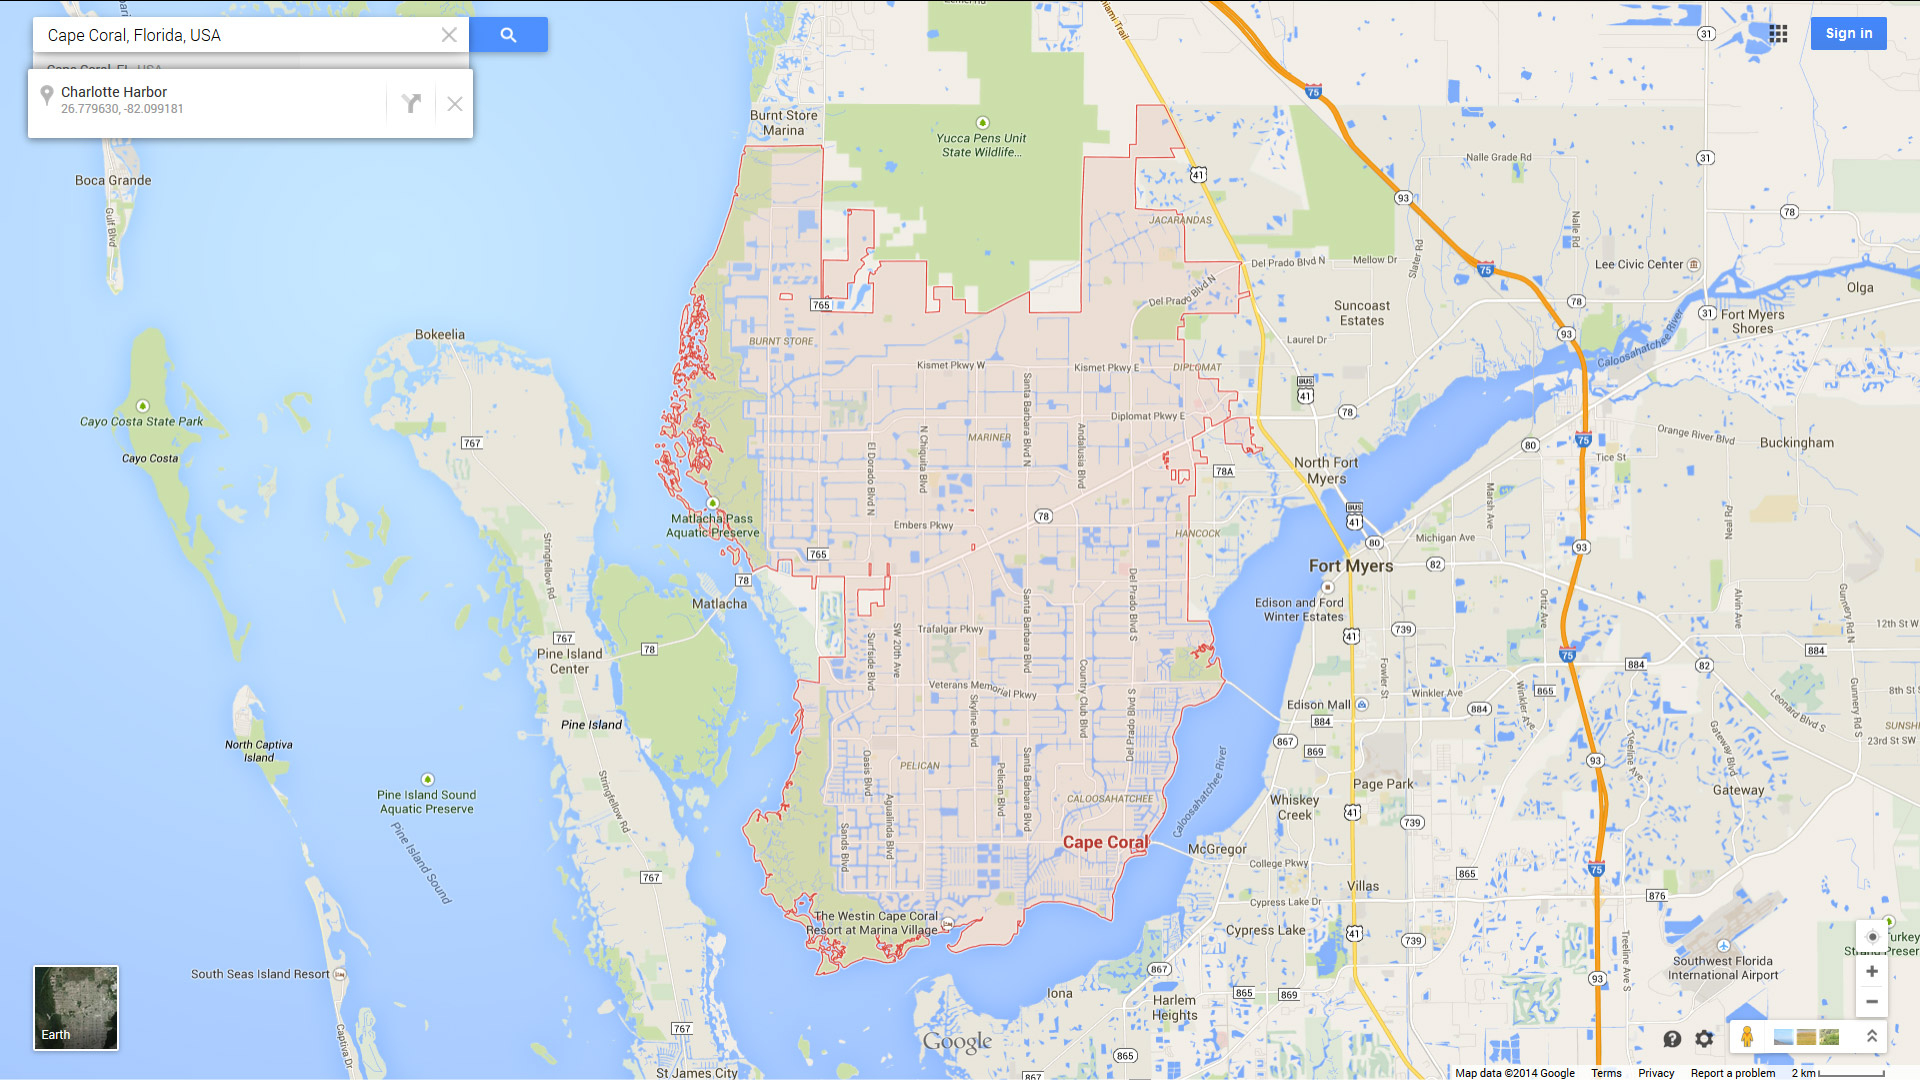 Cape Coral, Florida Map - Street Map Of Cape Coral Florida